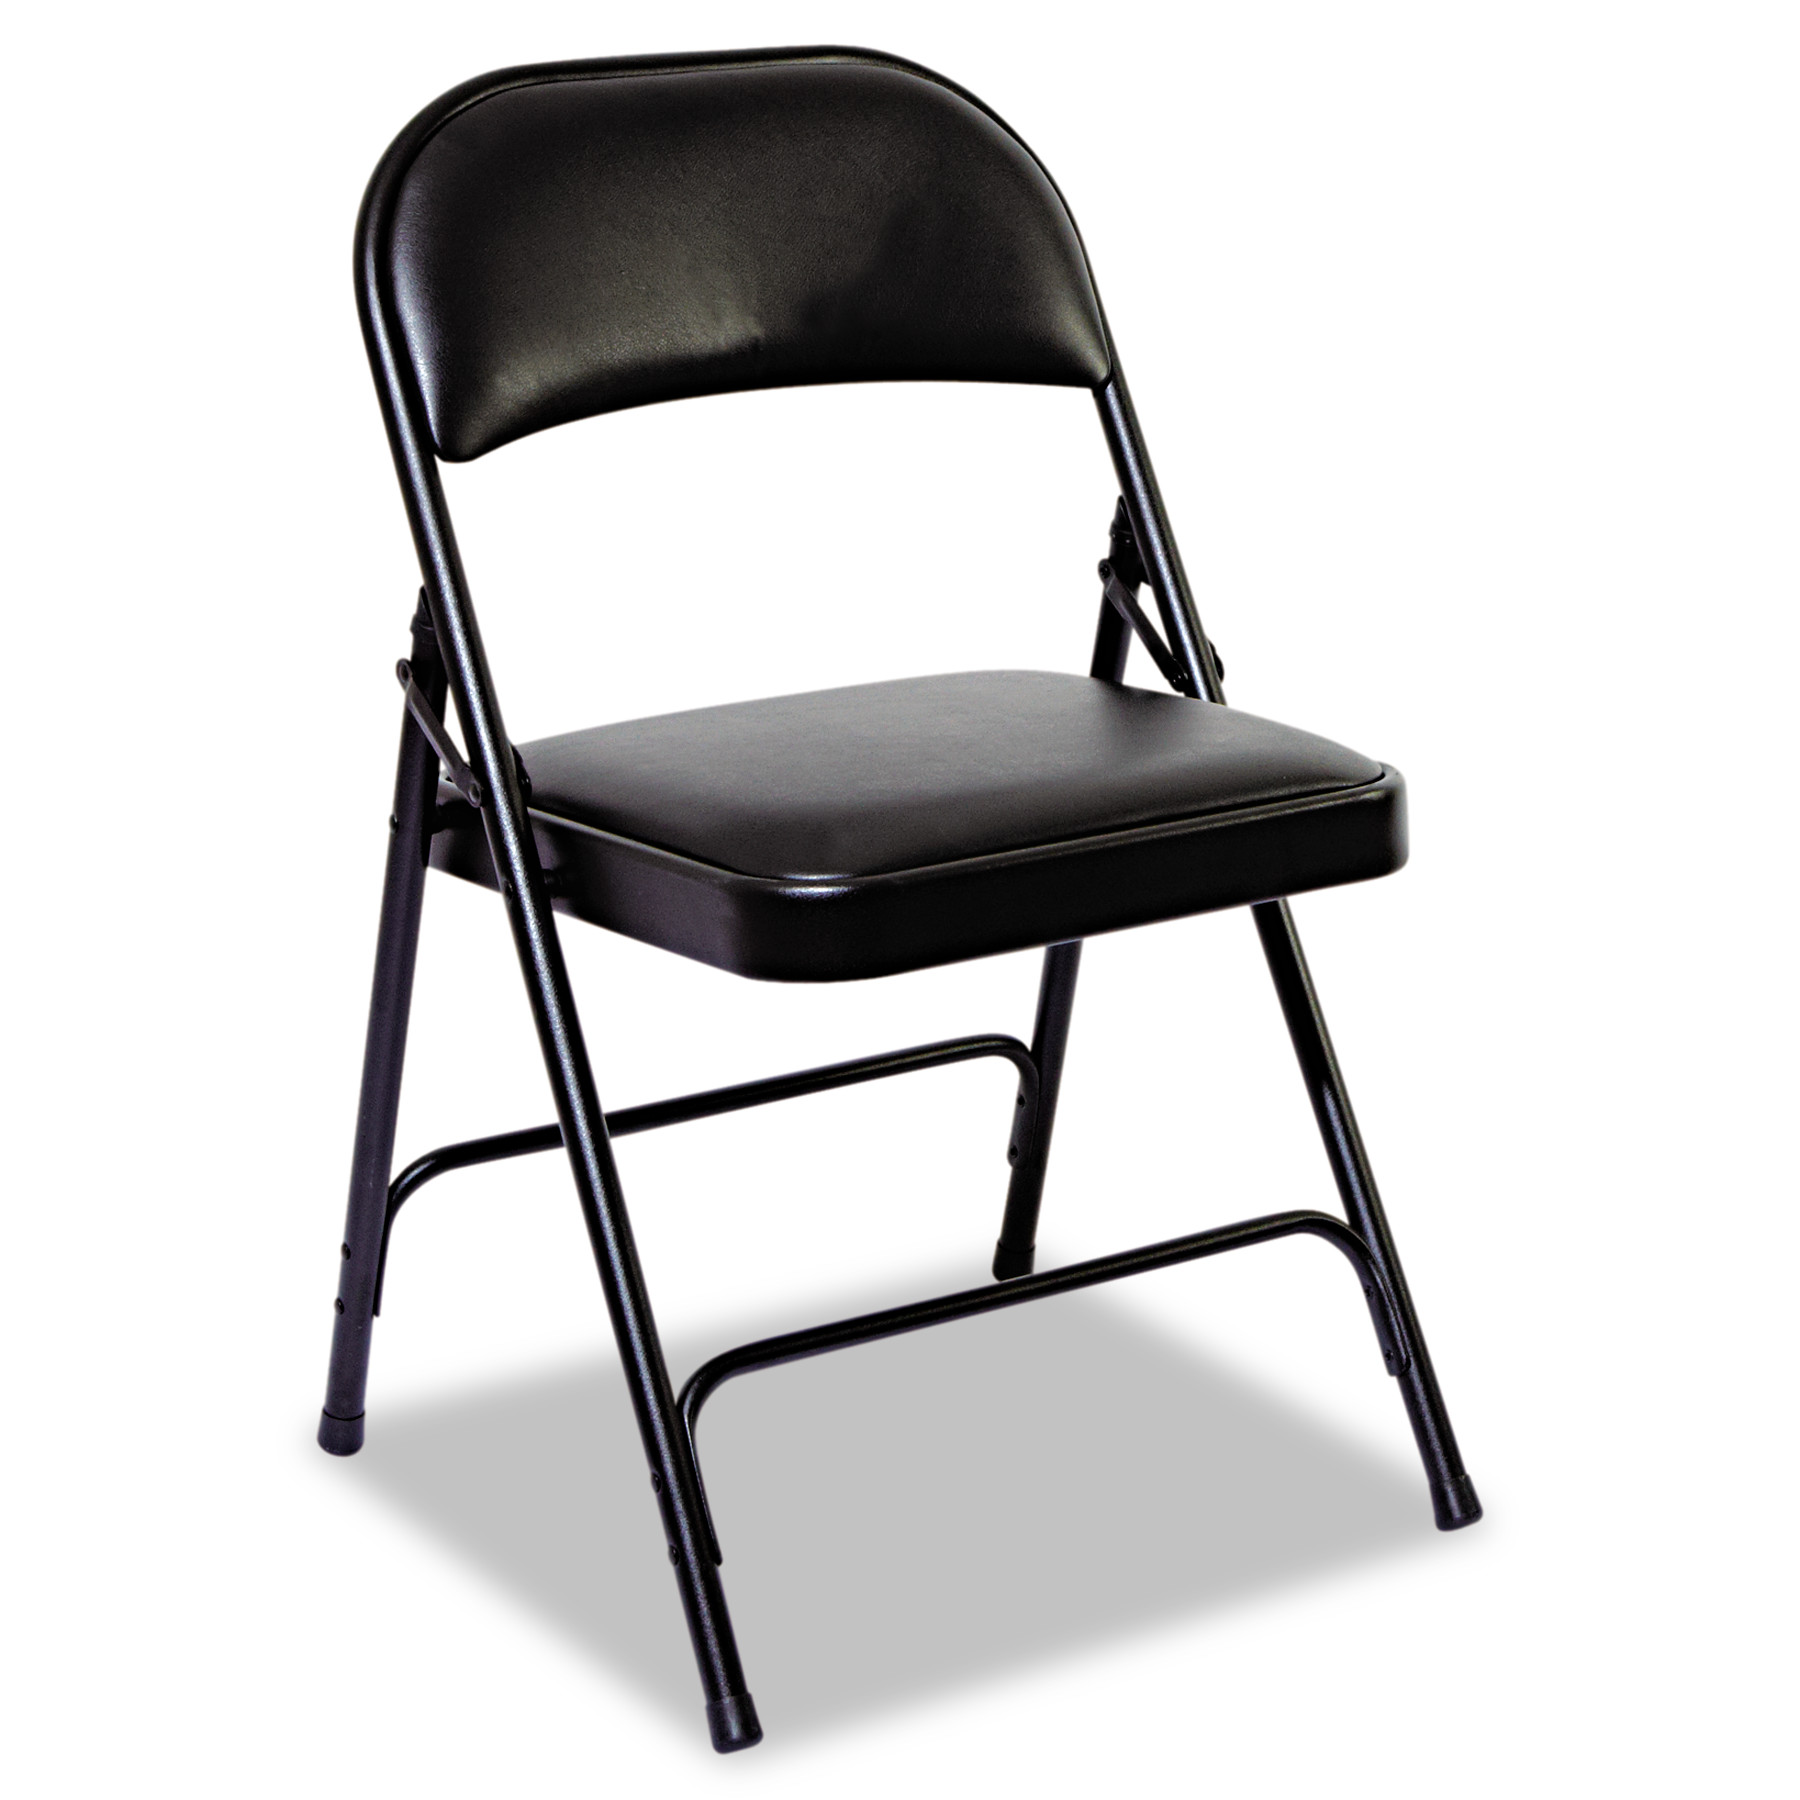 Alera Steel Folding Chair with Two-Brace Support, Padded Back/Seat, Graphite, 4 Per Carton